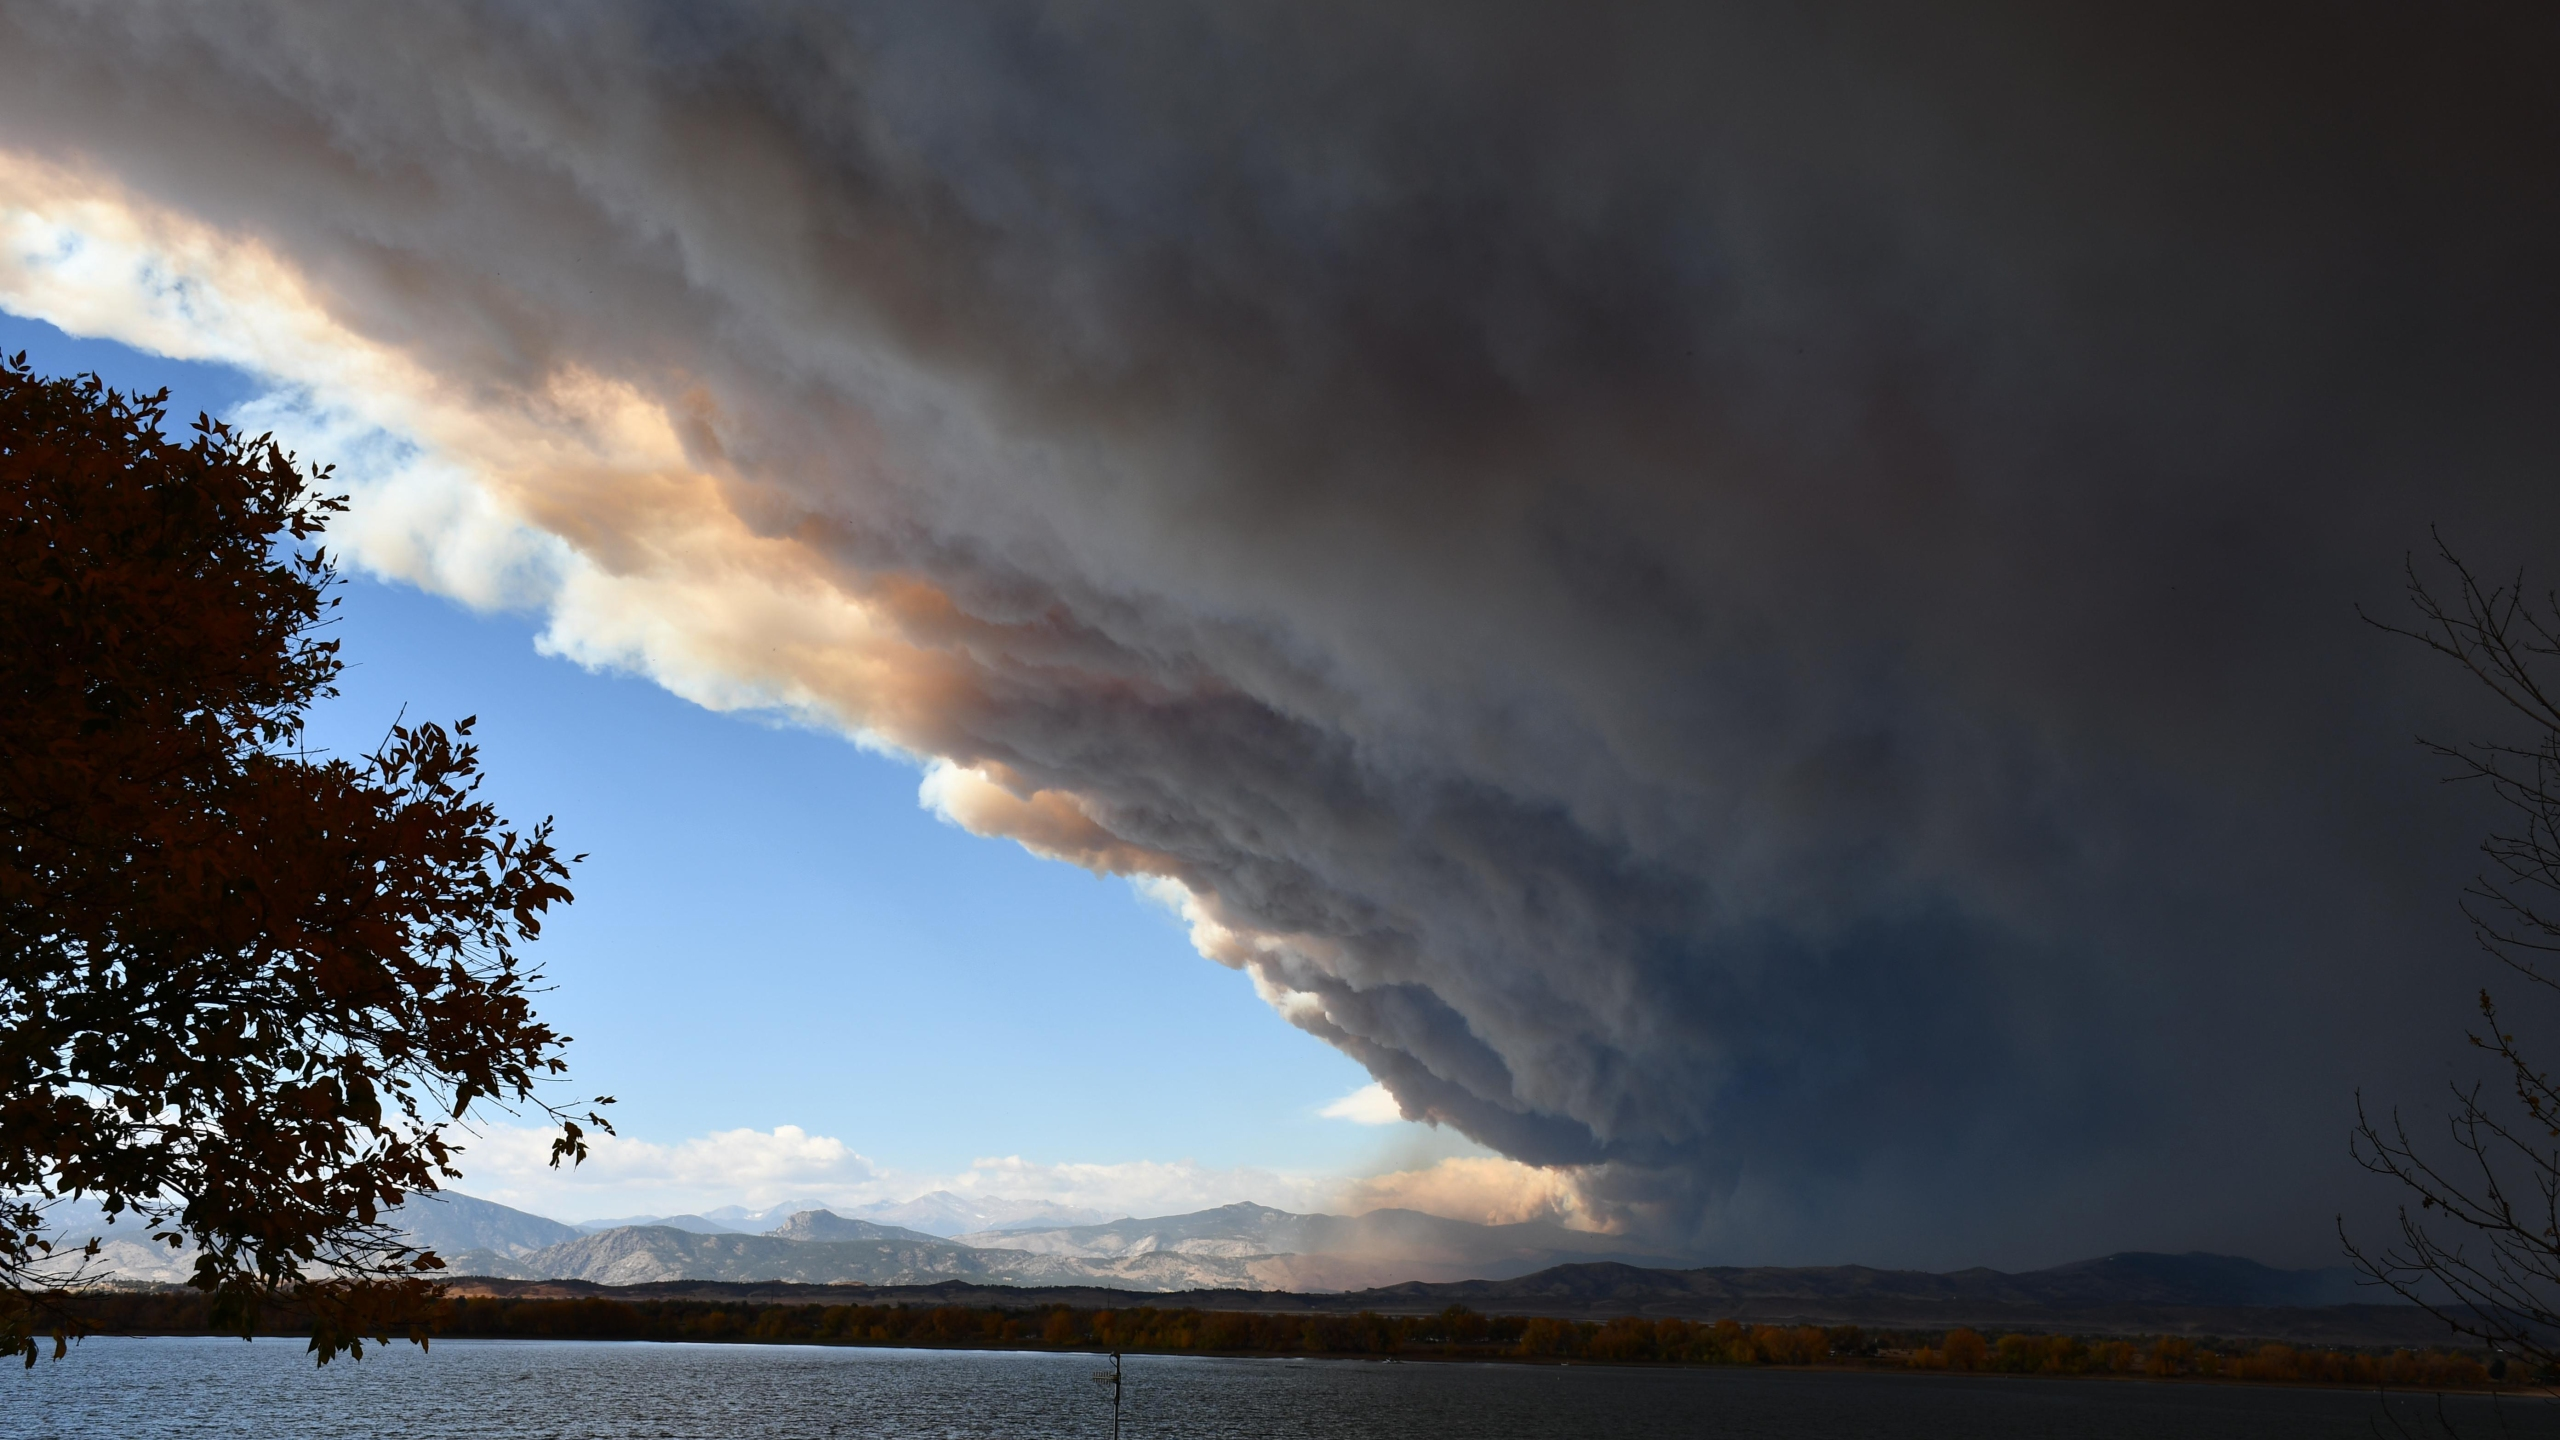 A Cameron Peak Fire smoke column as seen from Boyd Lake Wednesday morning. October 14. The fire burned aggressively due to very high winds. / Courtesy Cameron Peak Fire Information